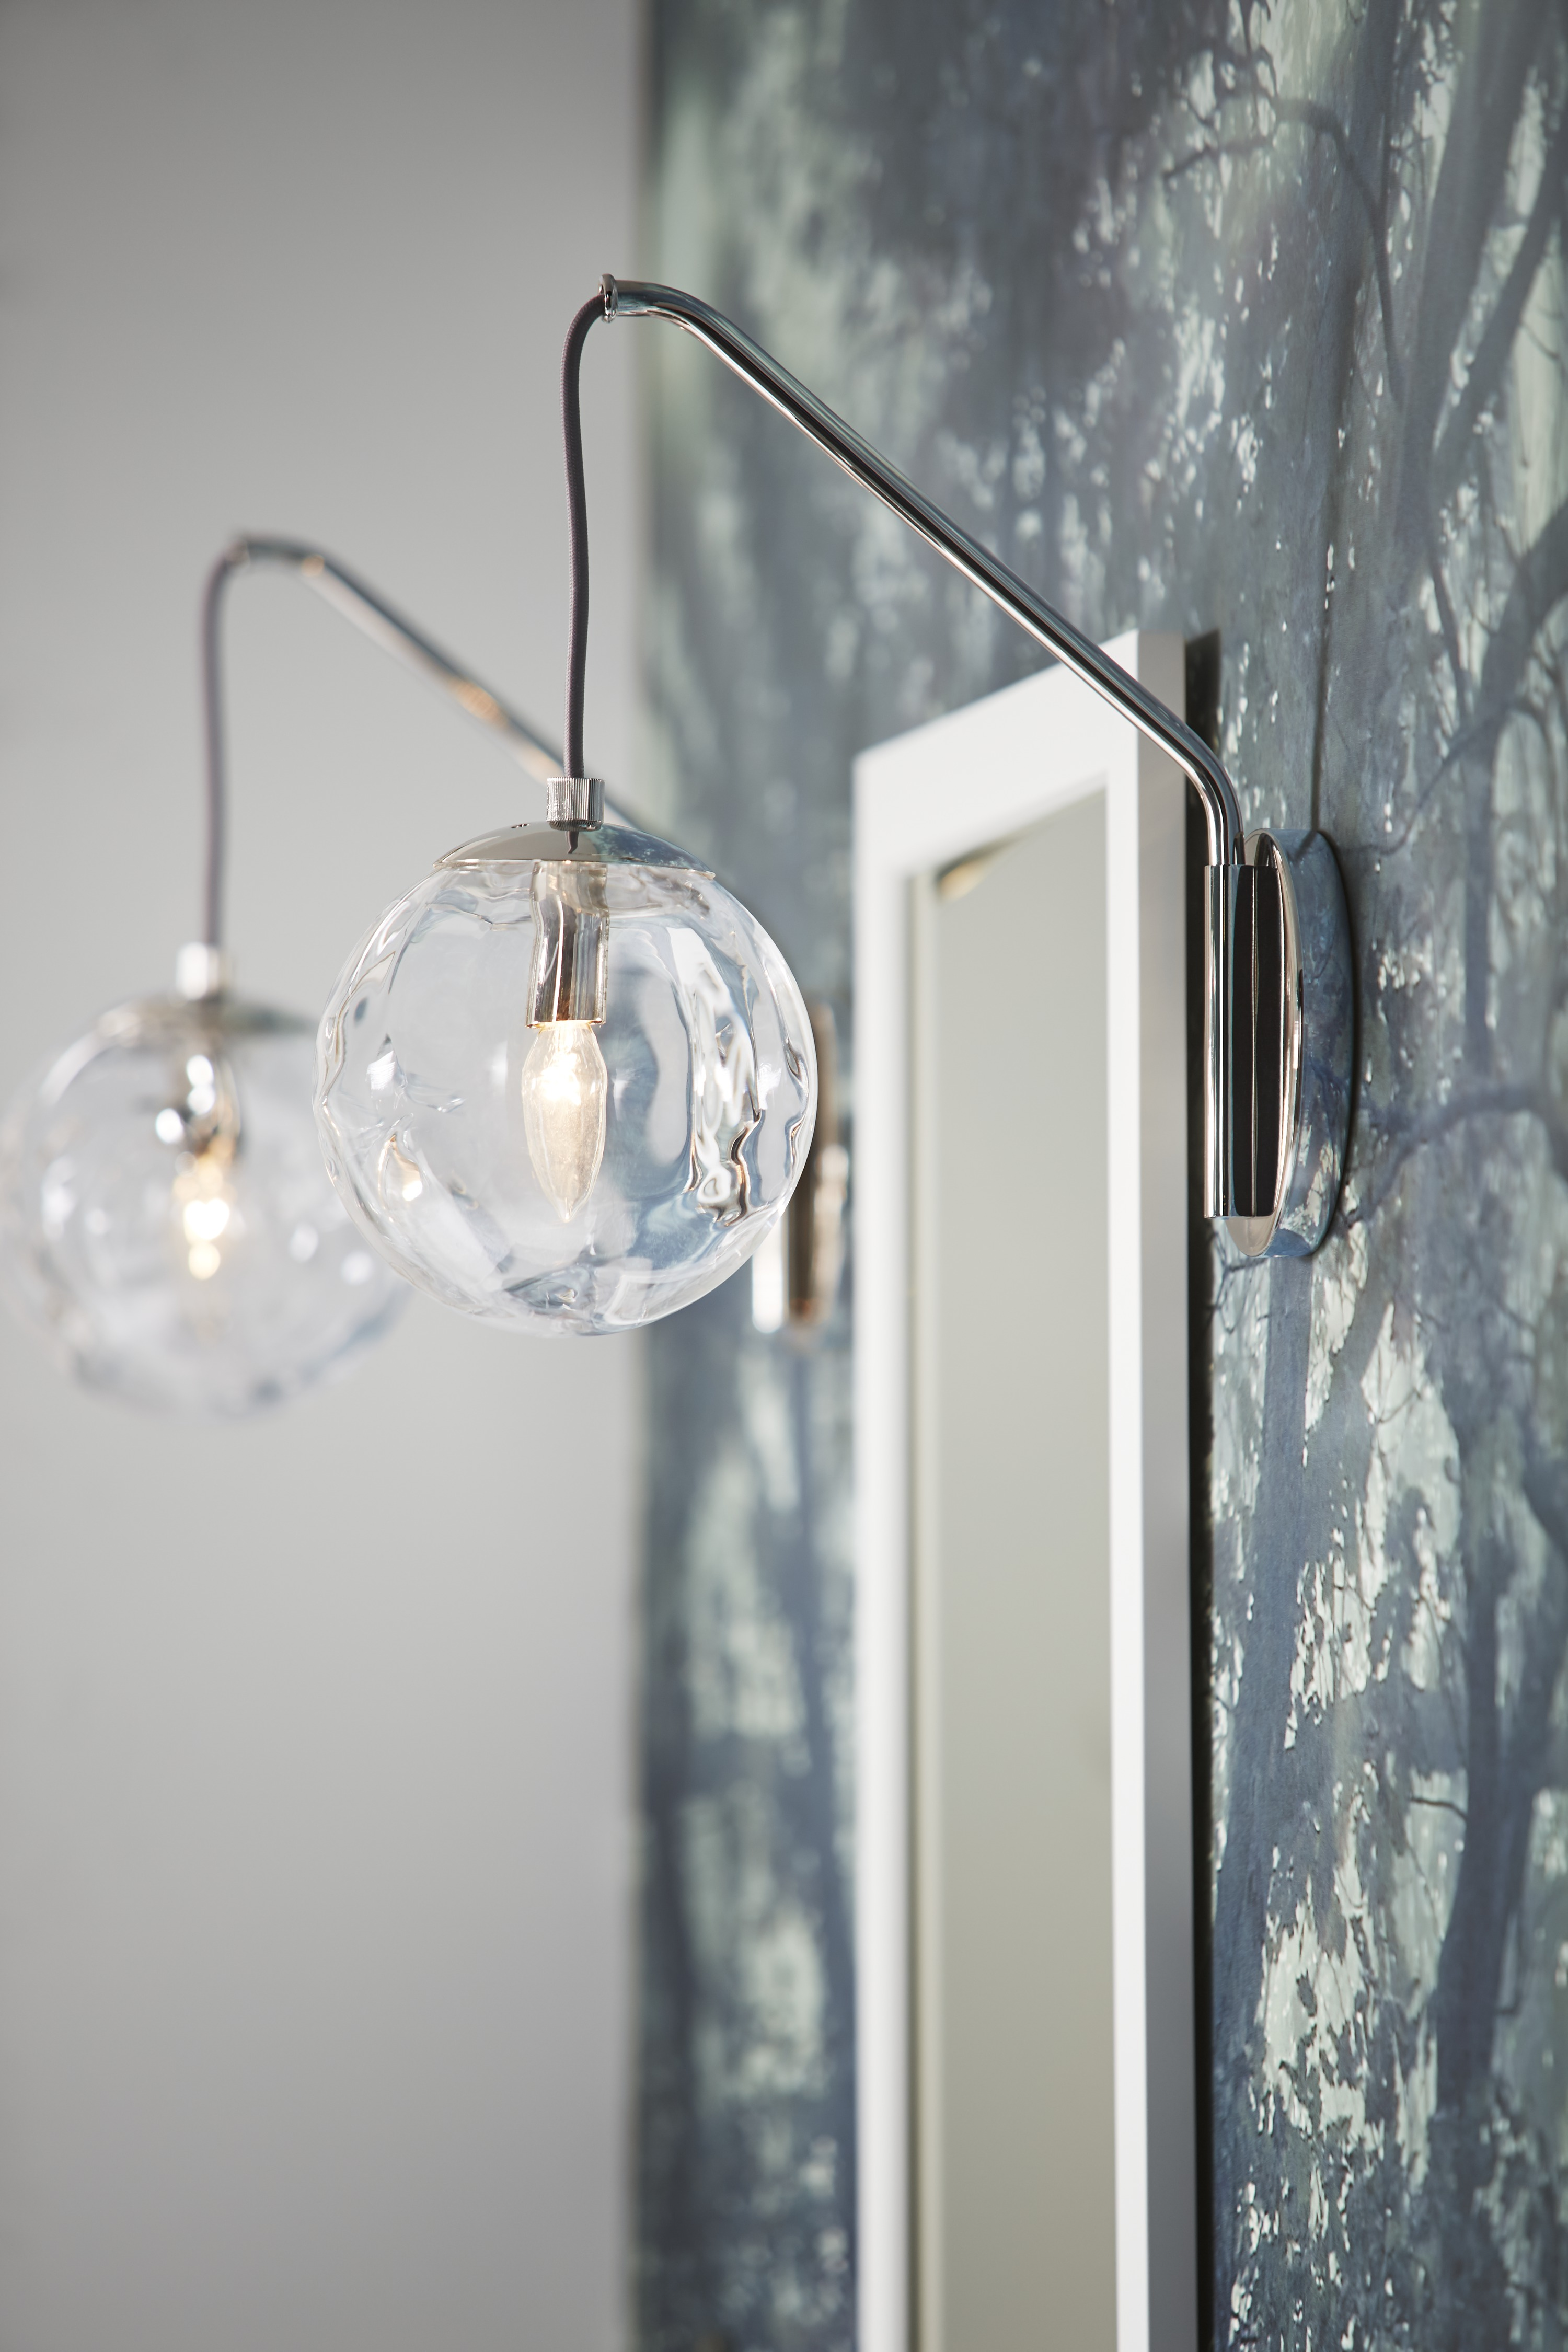 Poplin® mirror     Clear, uniquely hung pendant lights provide an interesting contrast to a sleek, simple mirror.